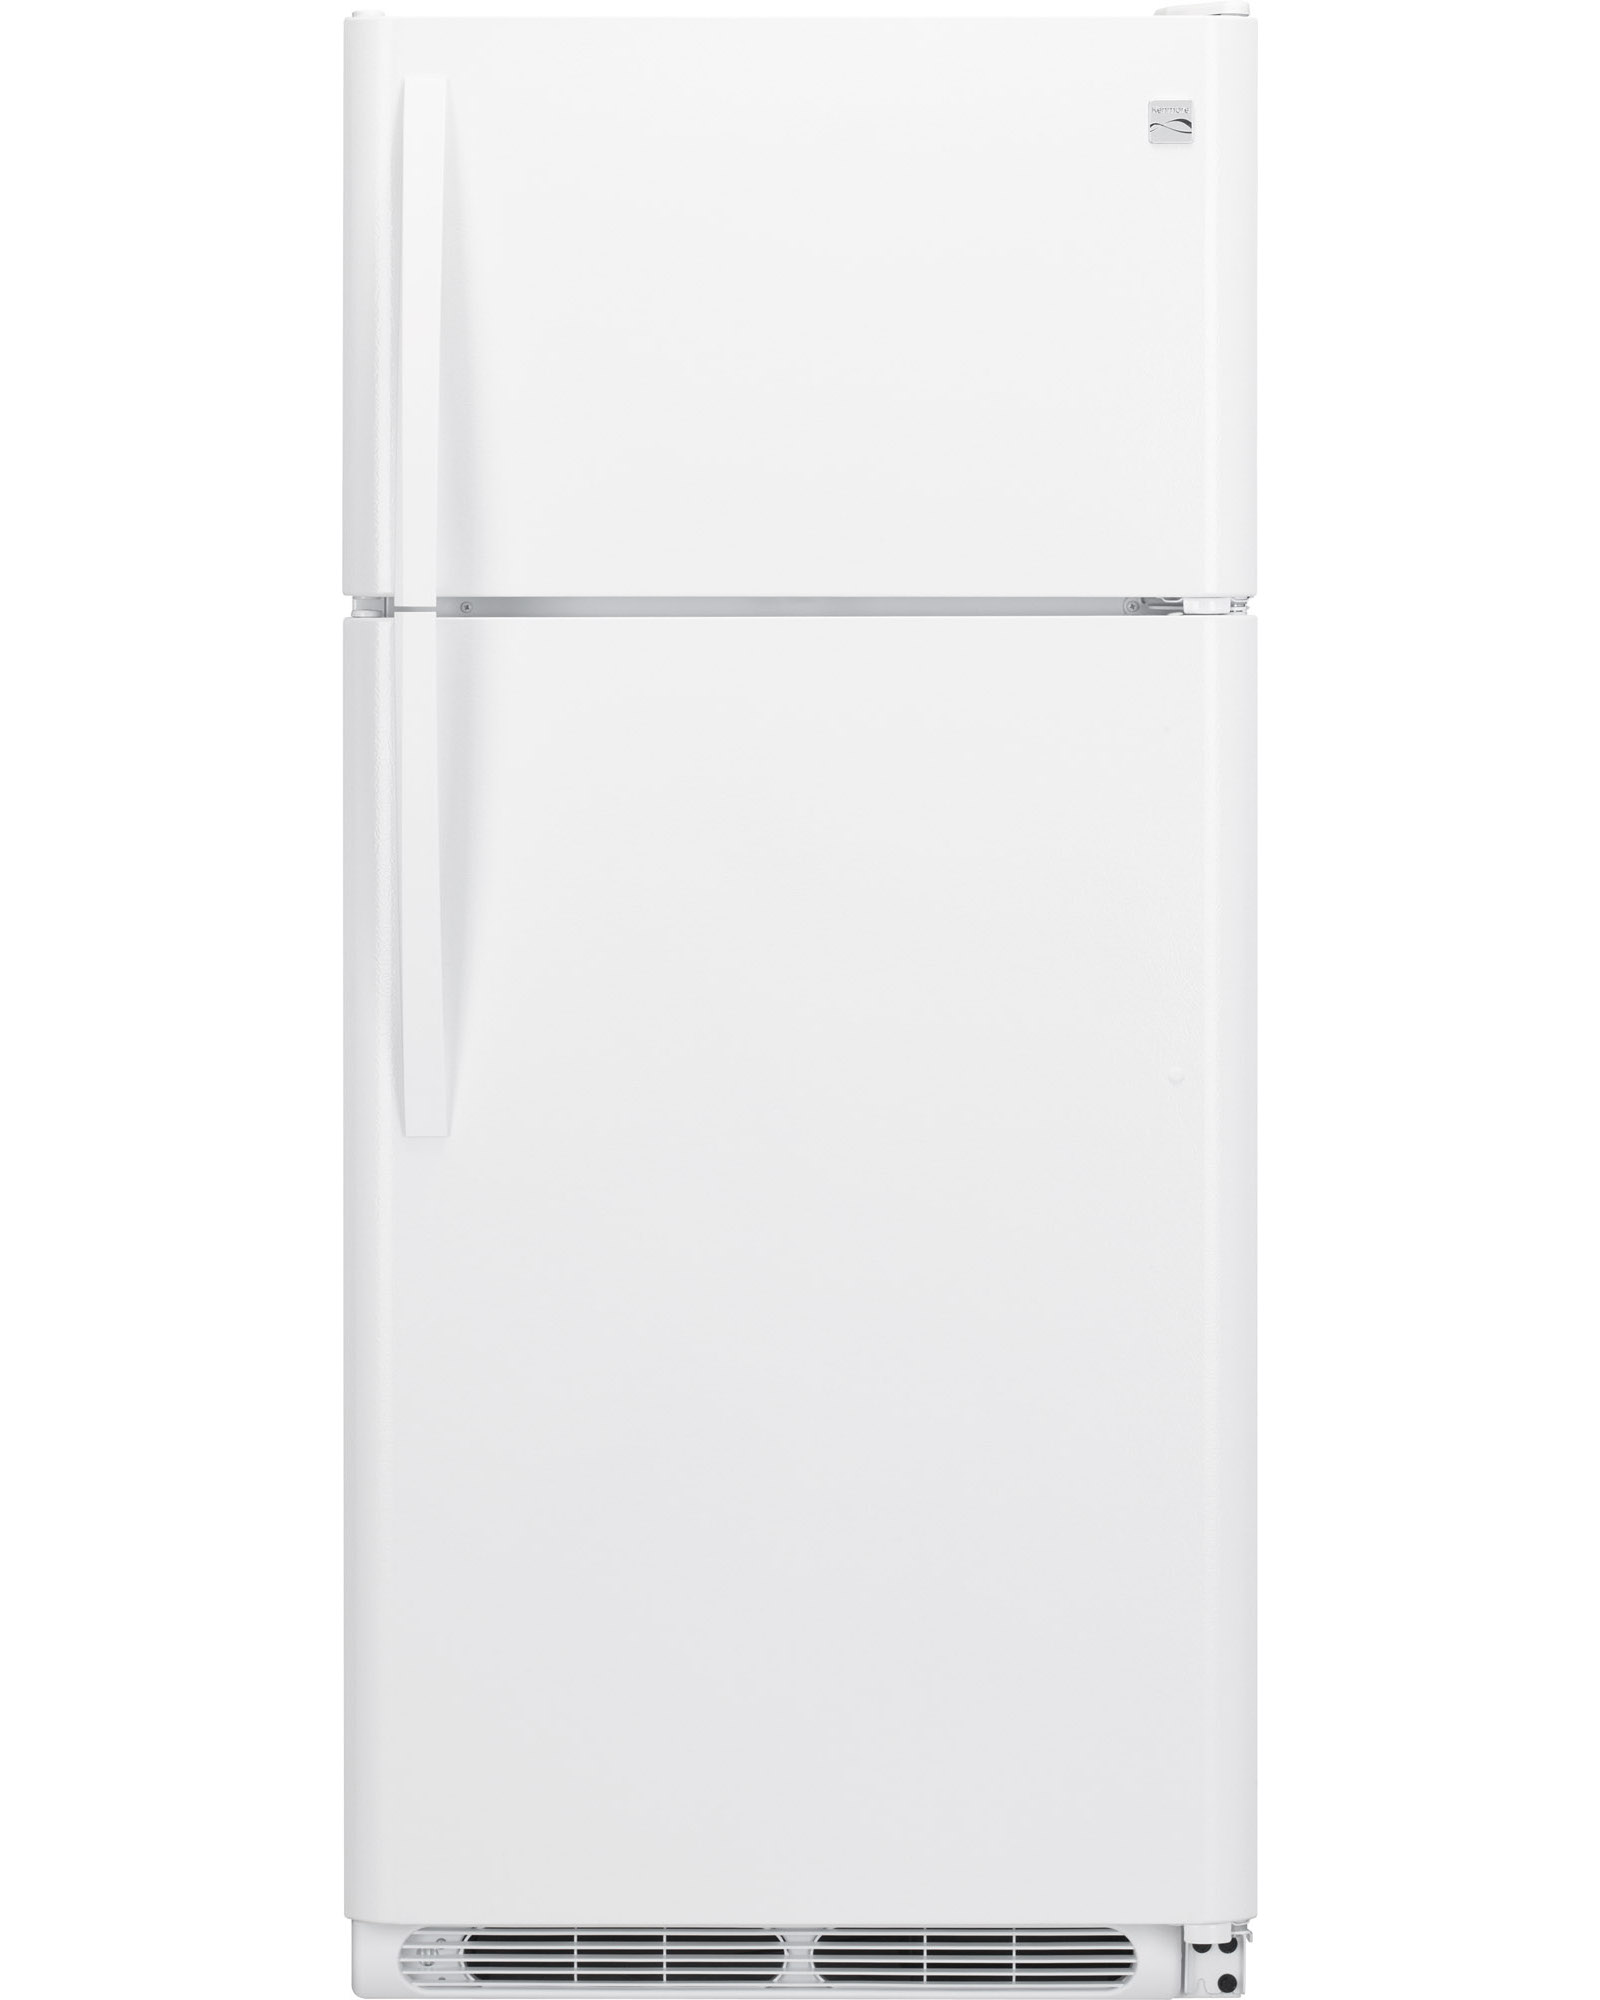 60502-18-cu-ft-Top-Freezer-Refrigerator-w-Glass-Shelves-White